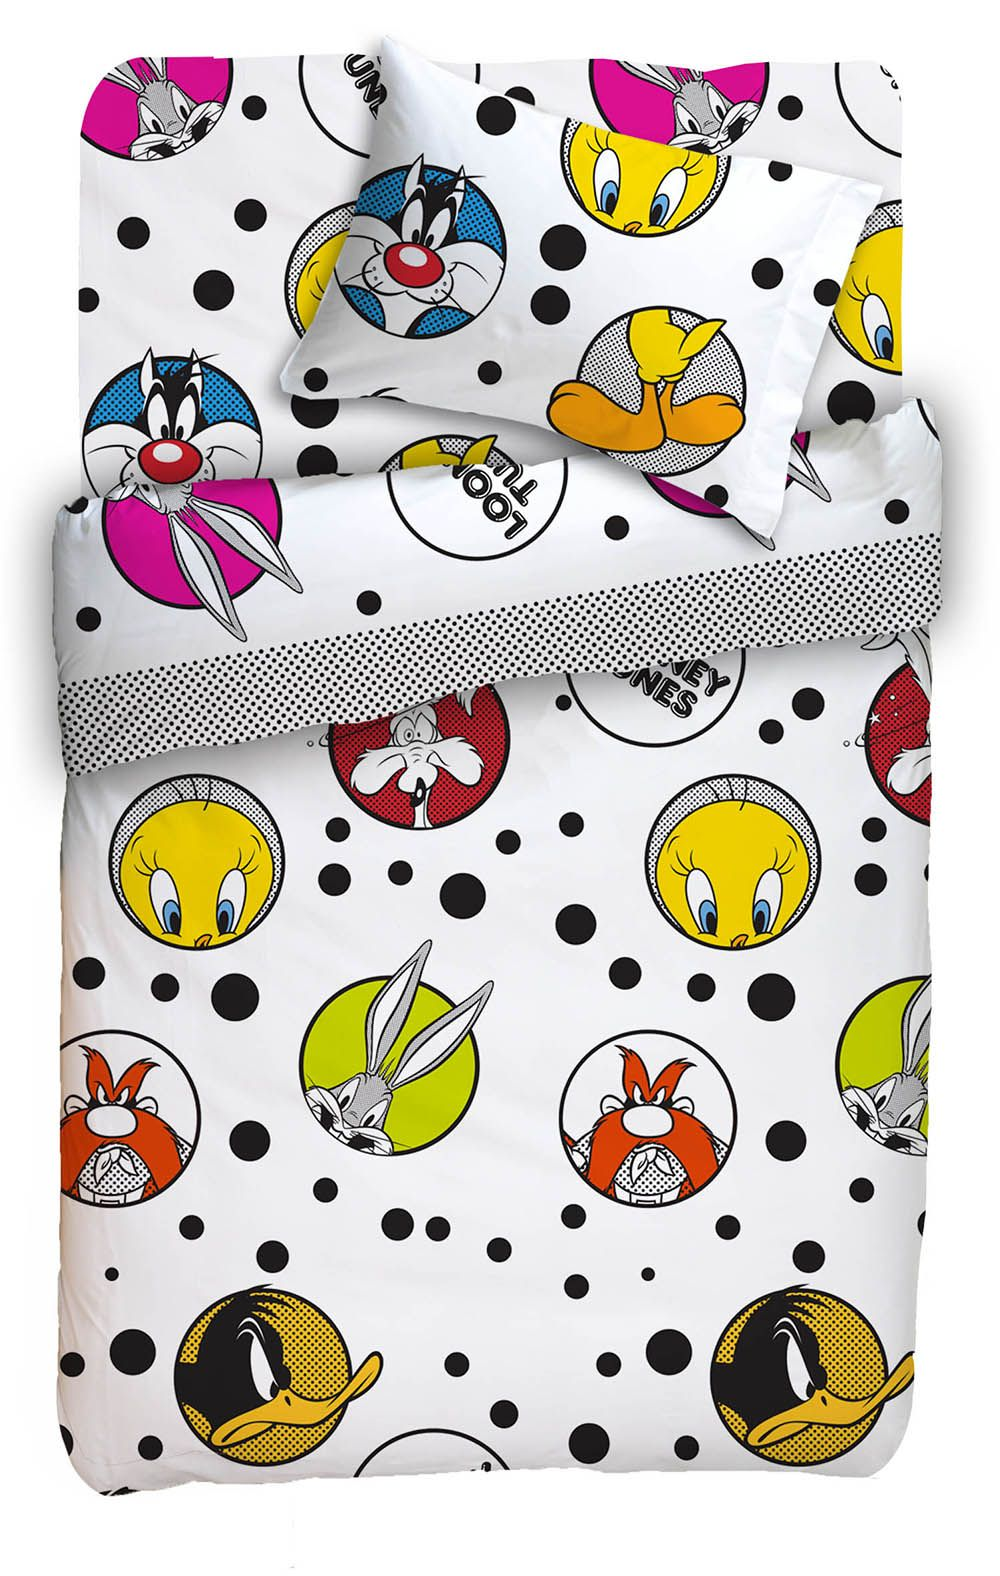 Looney Tunes Homewear Bedding